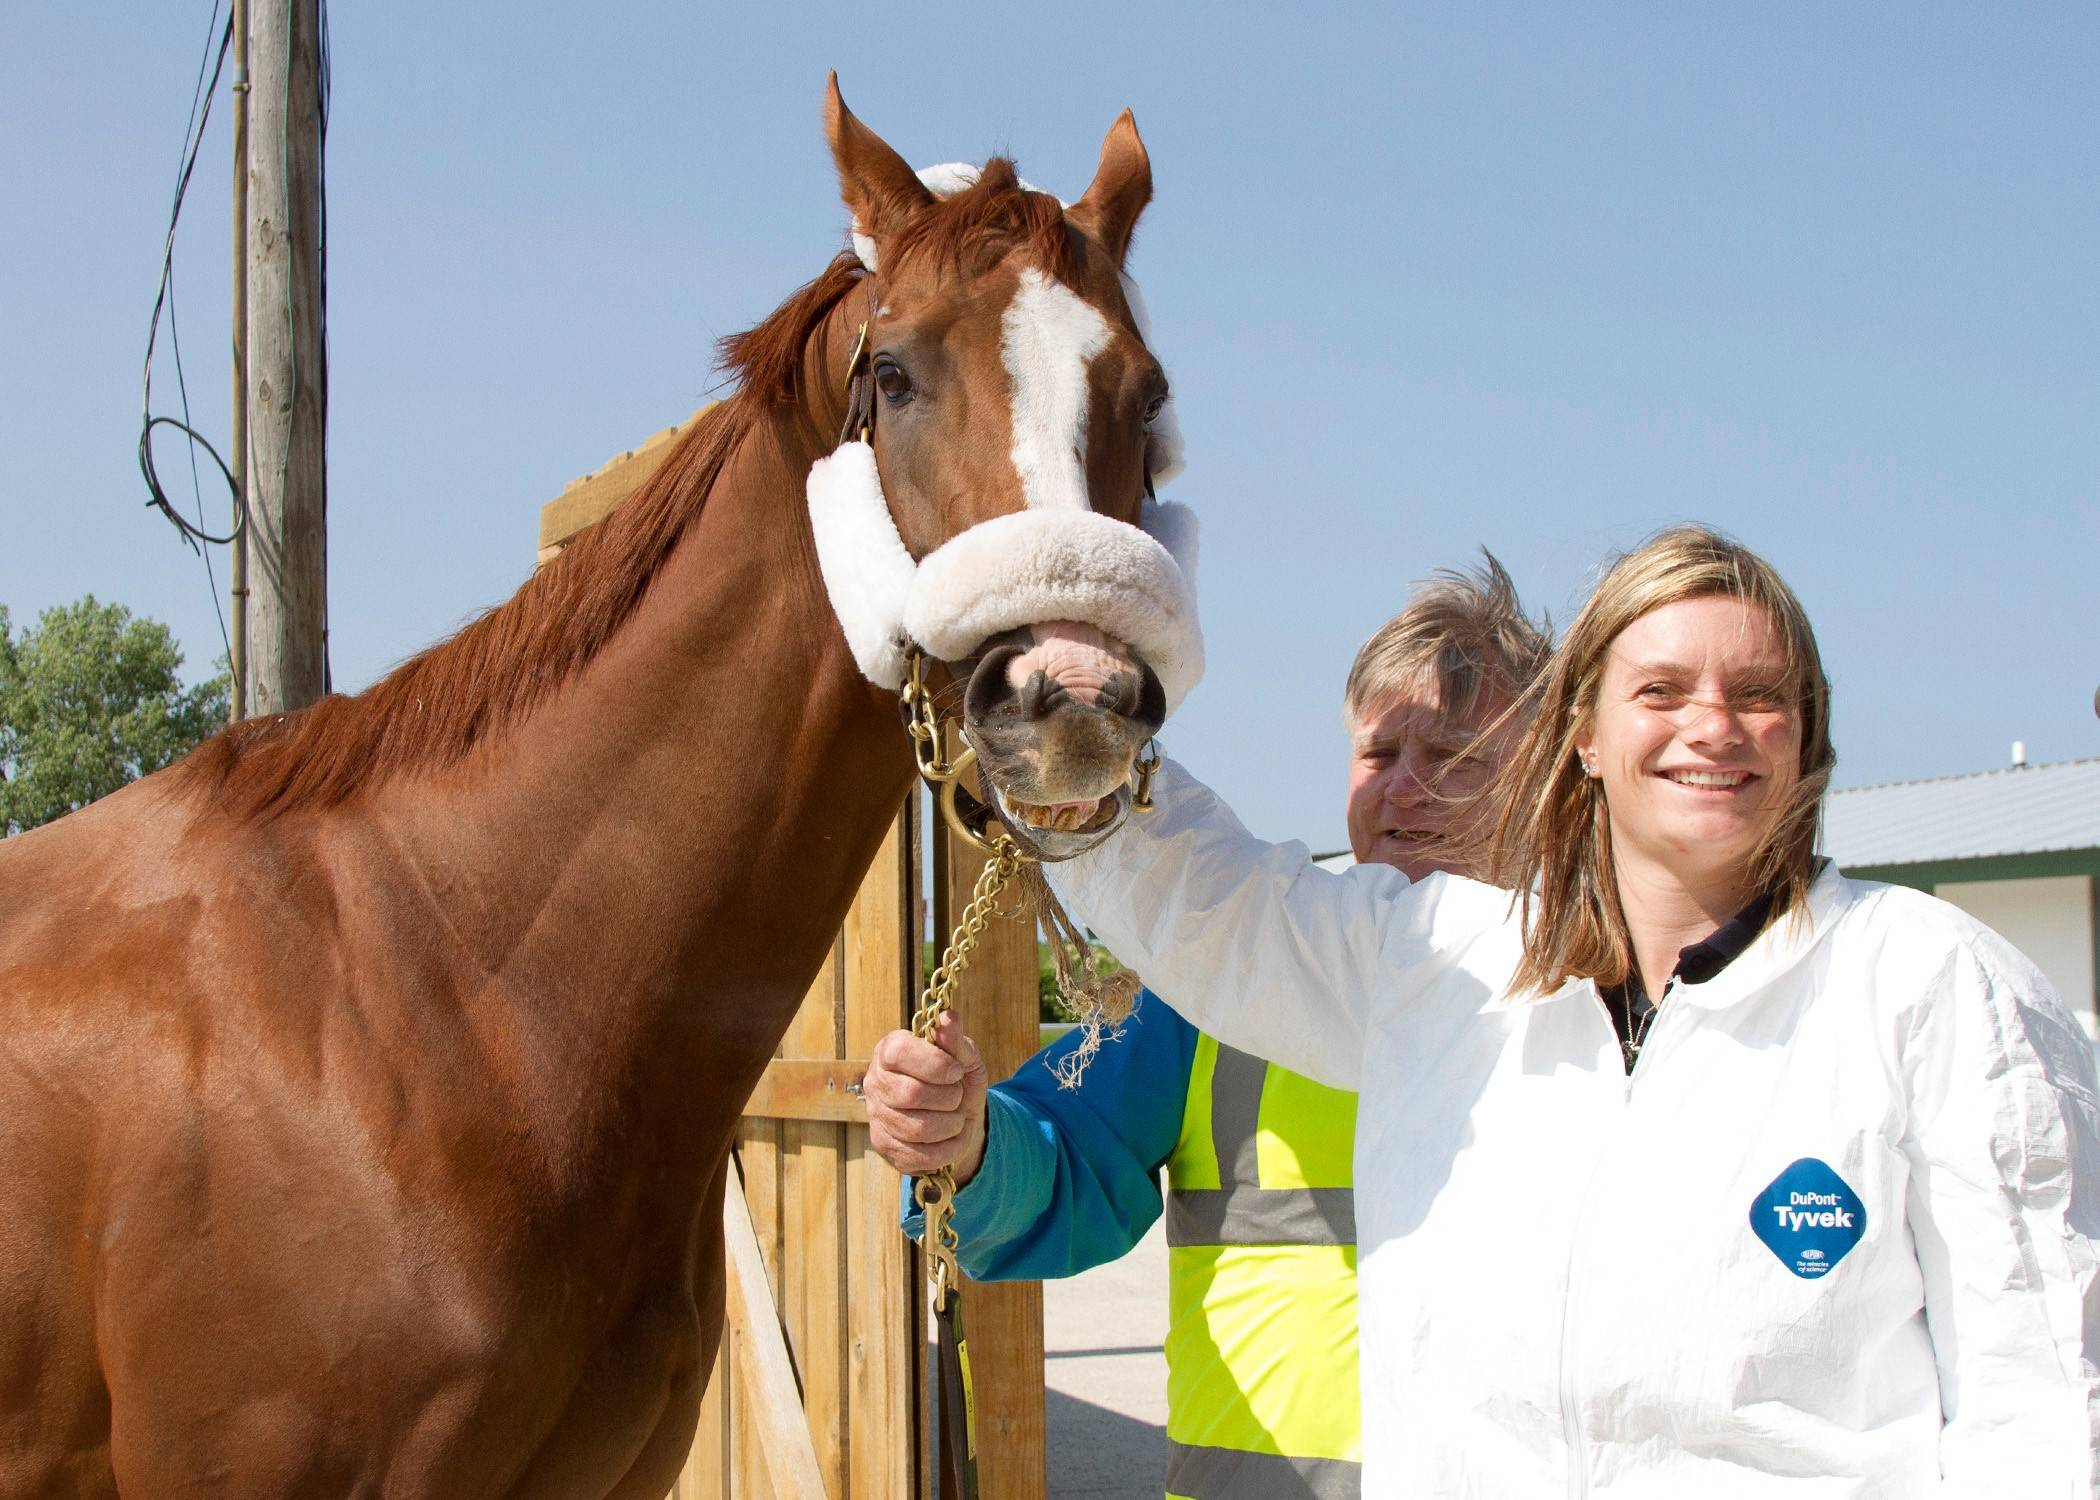 California Chrome arrives at Arlington Park on Tuesday. The 2014 Kentucky Derby and Preakness winner and horse of the year will train at the racetrack ahead of the Arlington Million on Aug. 15. He's pictured here with Anna Wells, his exercise rider.